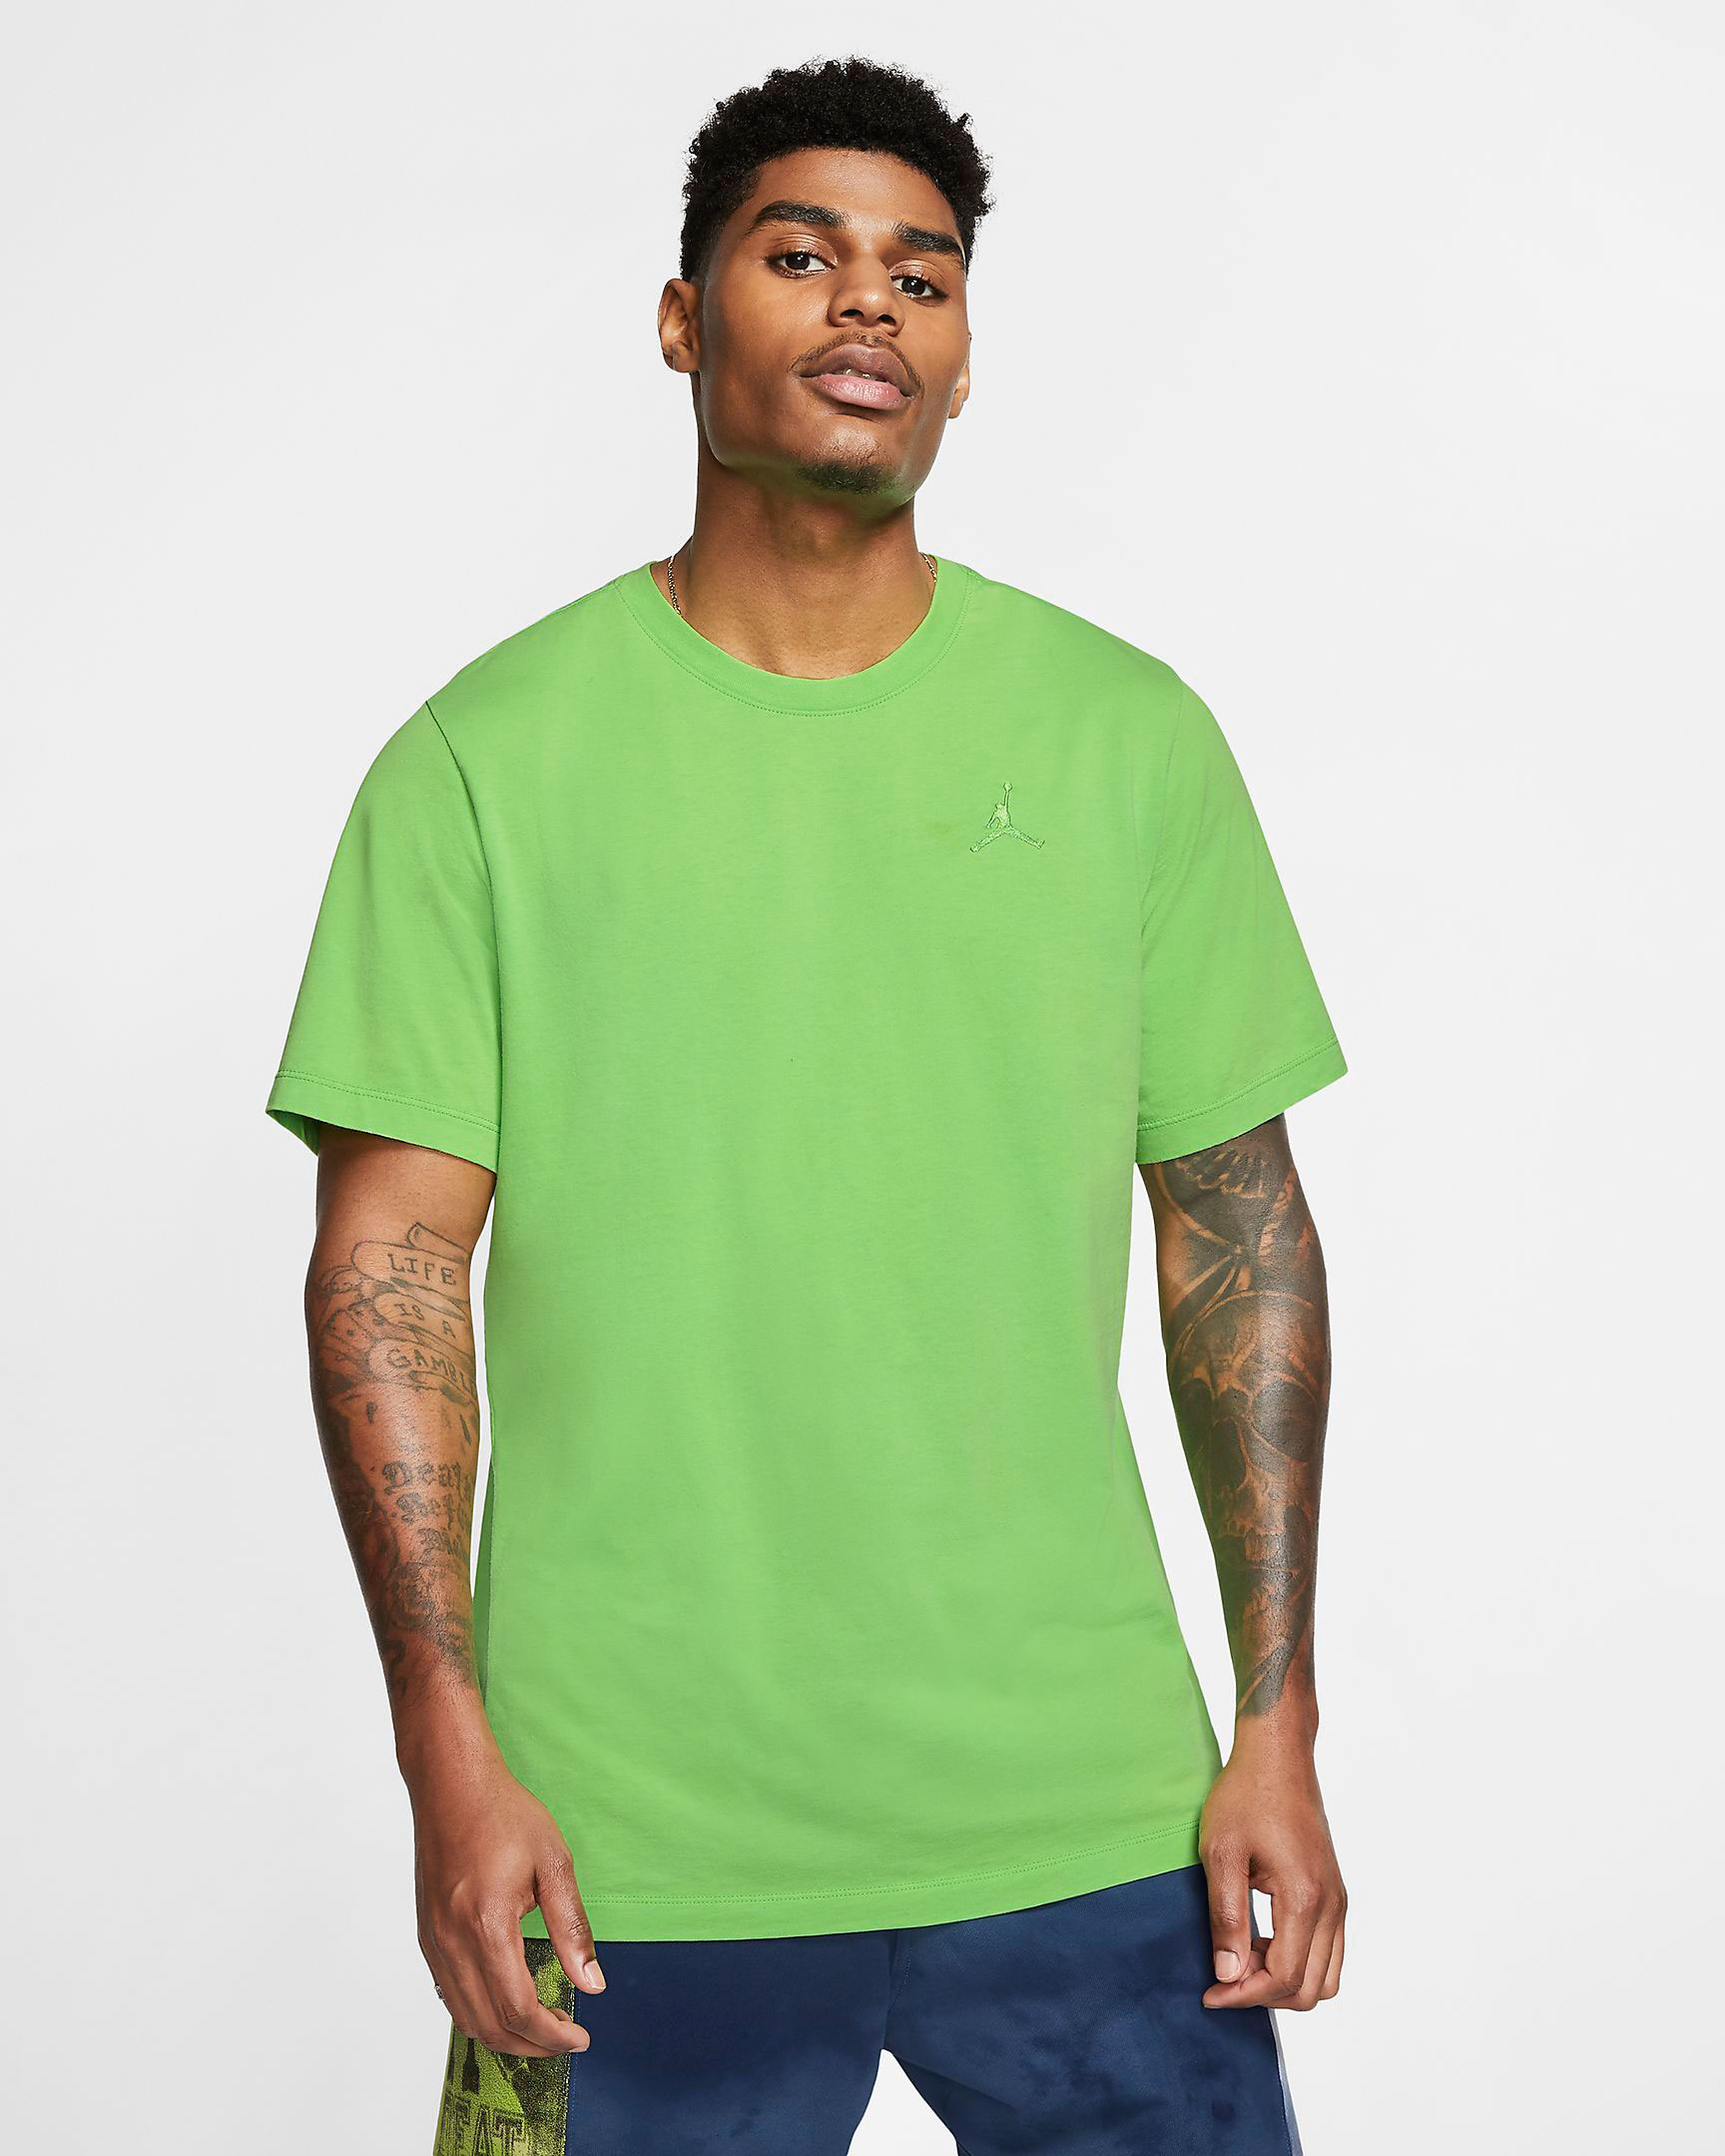 air-jordan-1-zoom-zen-green-shirt-match-2